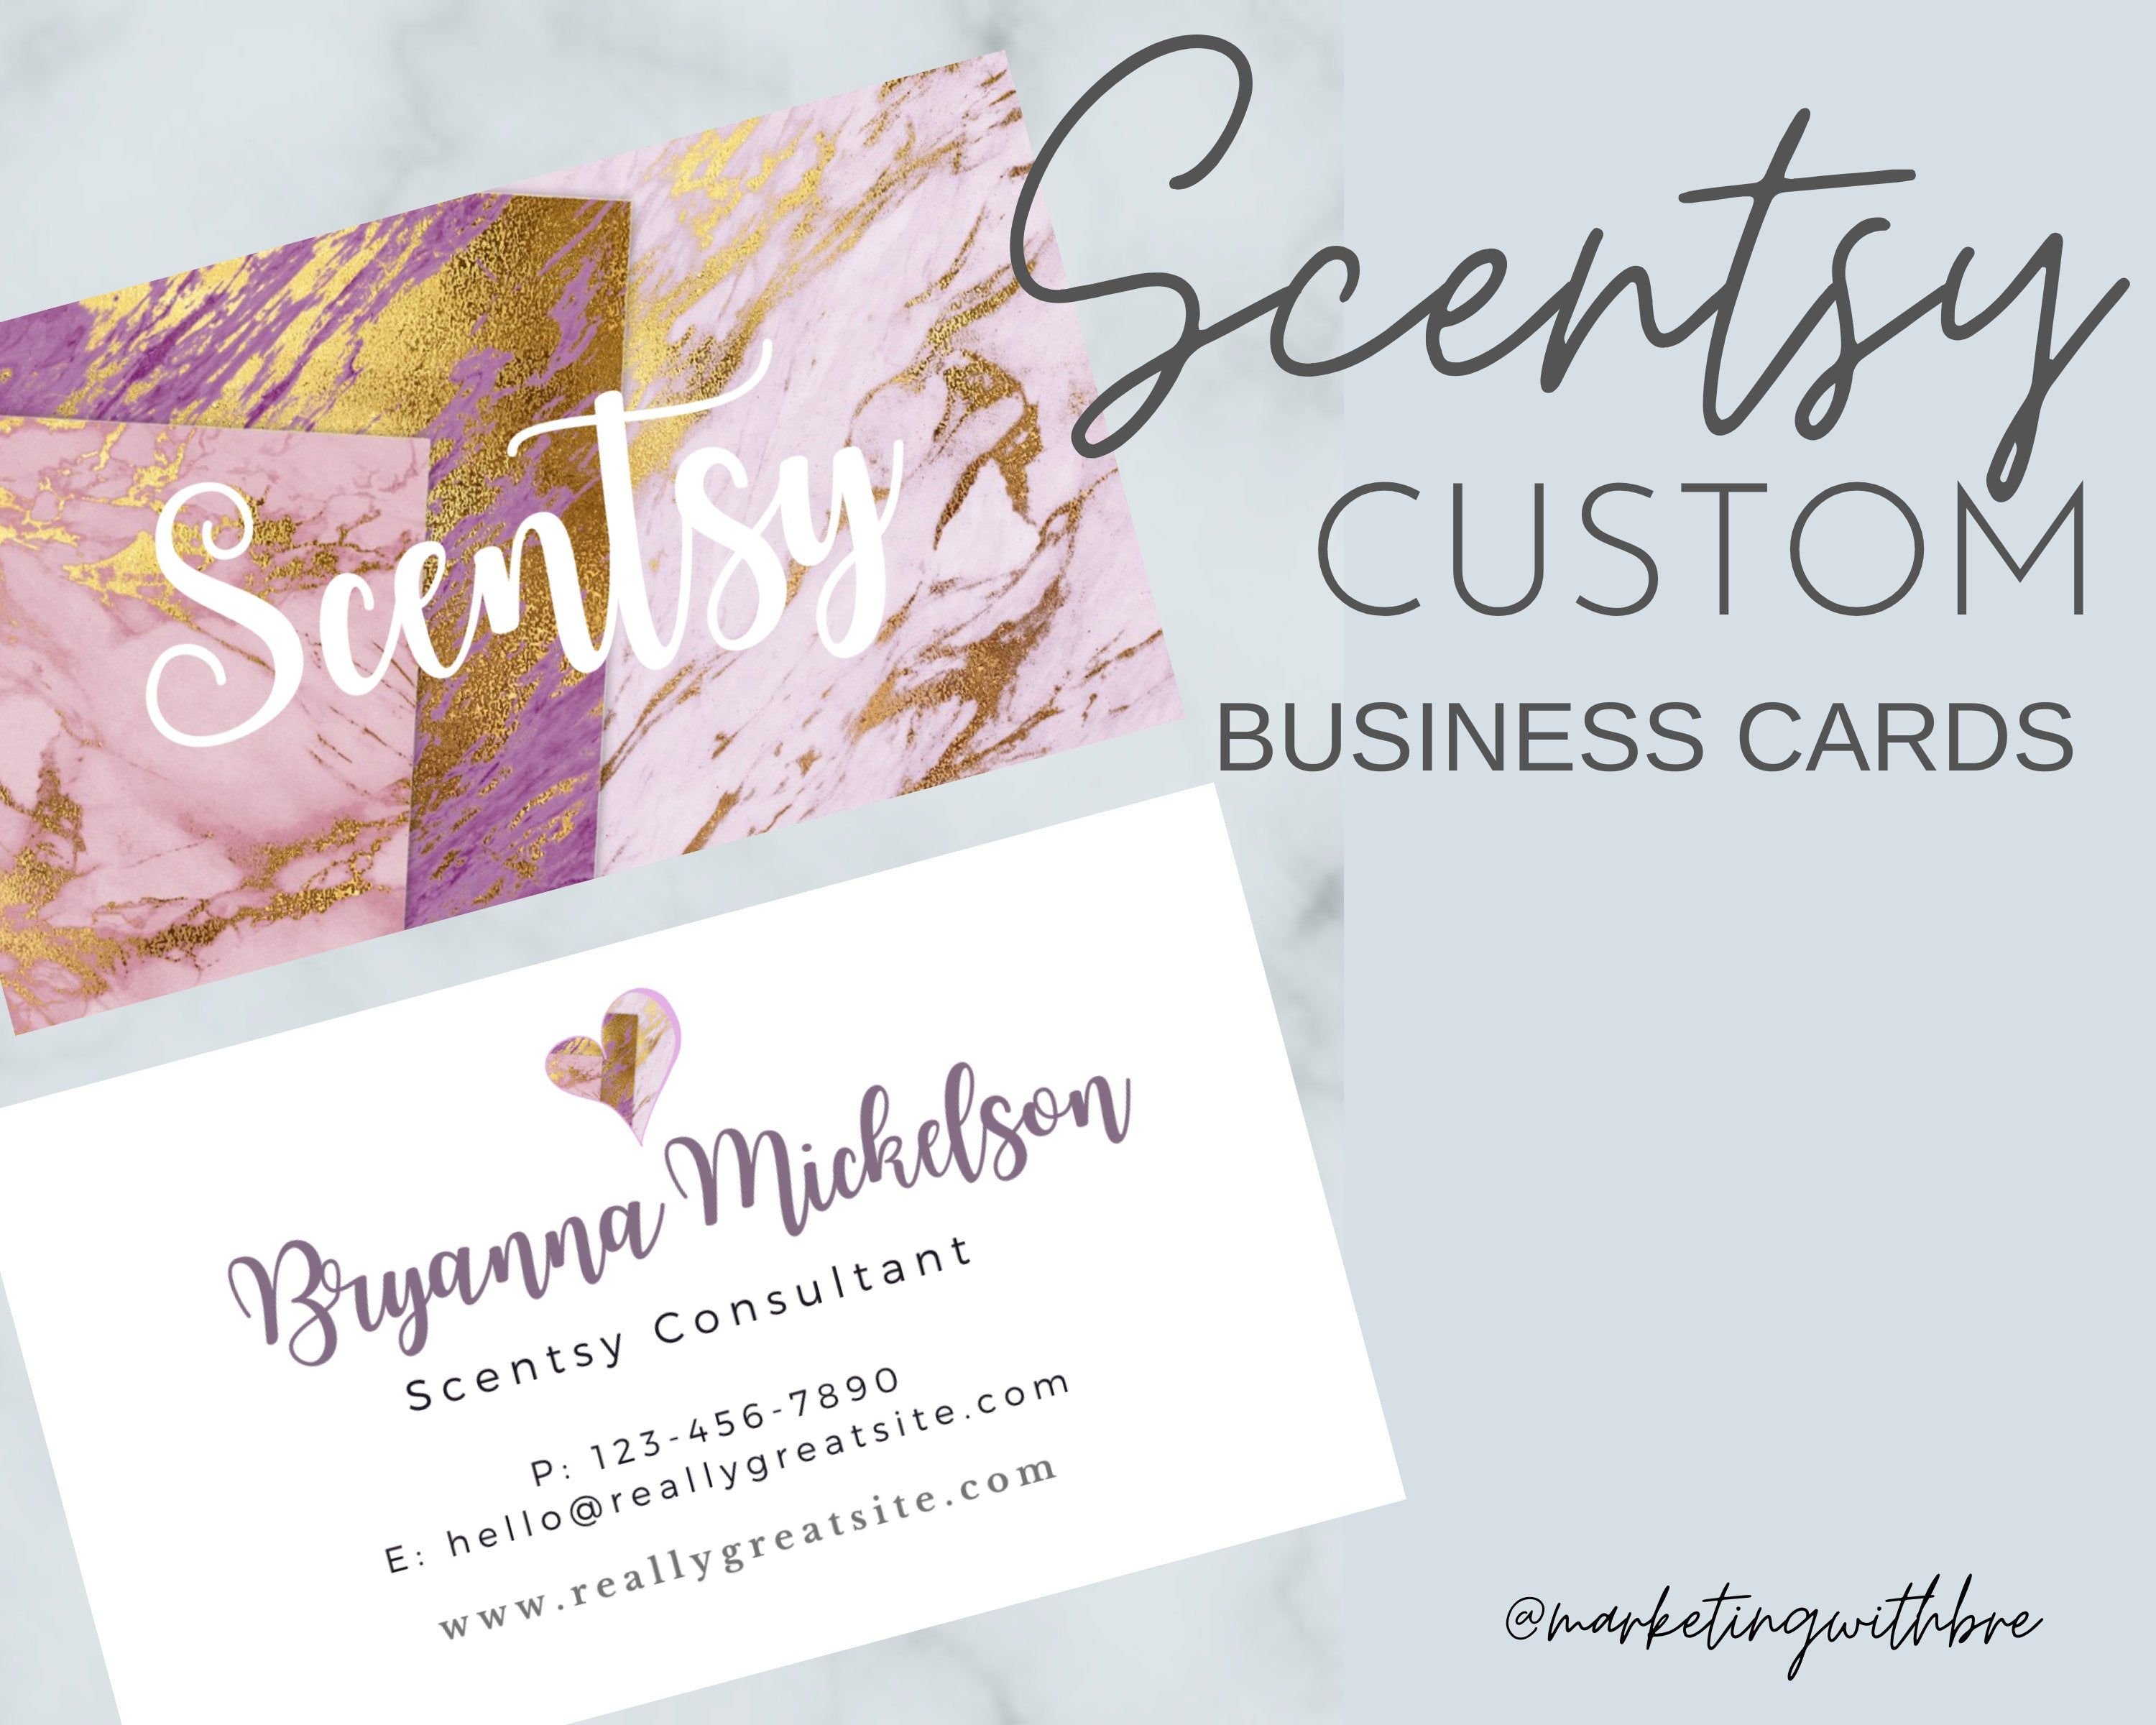 Scentsy Business Card Design 500 Business Cards Printed Template Personali Free Printable Business Cards Printing Business Cards Free Business Card Templates